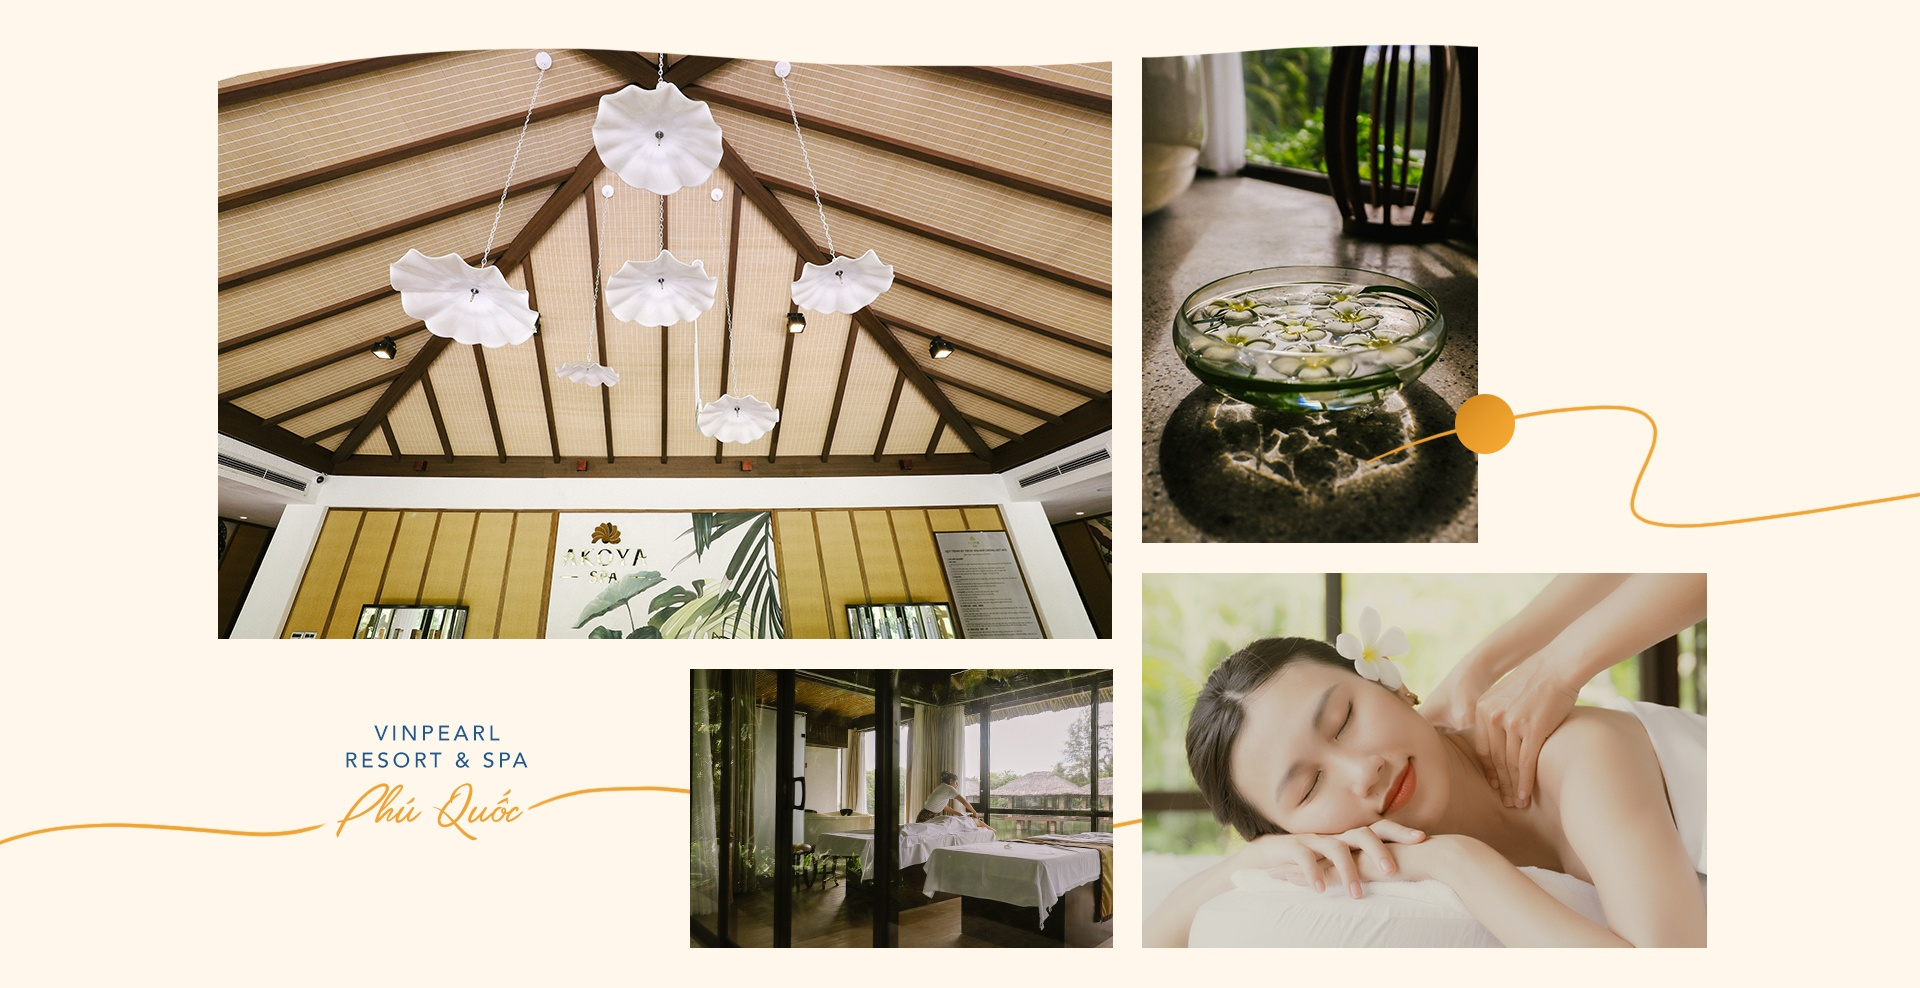 review Vinpearl Phu Quoc anh 6